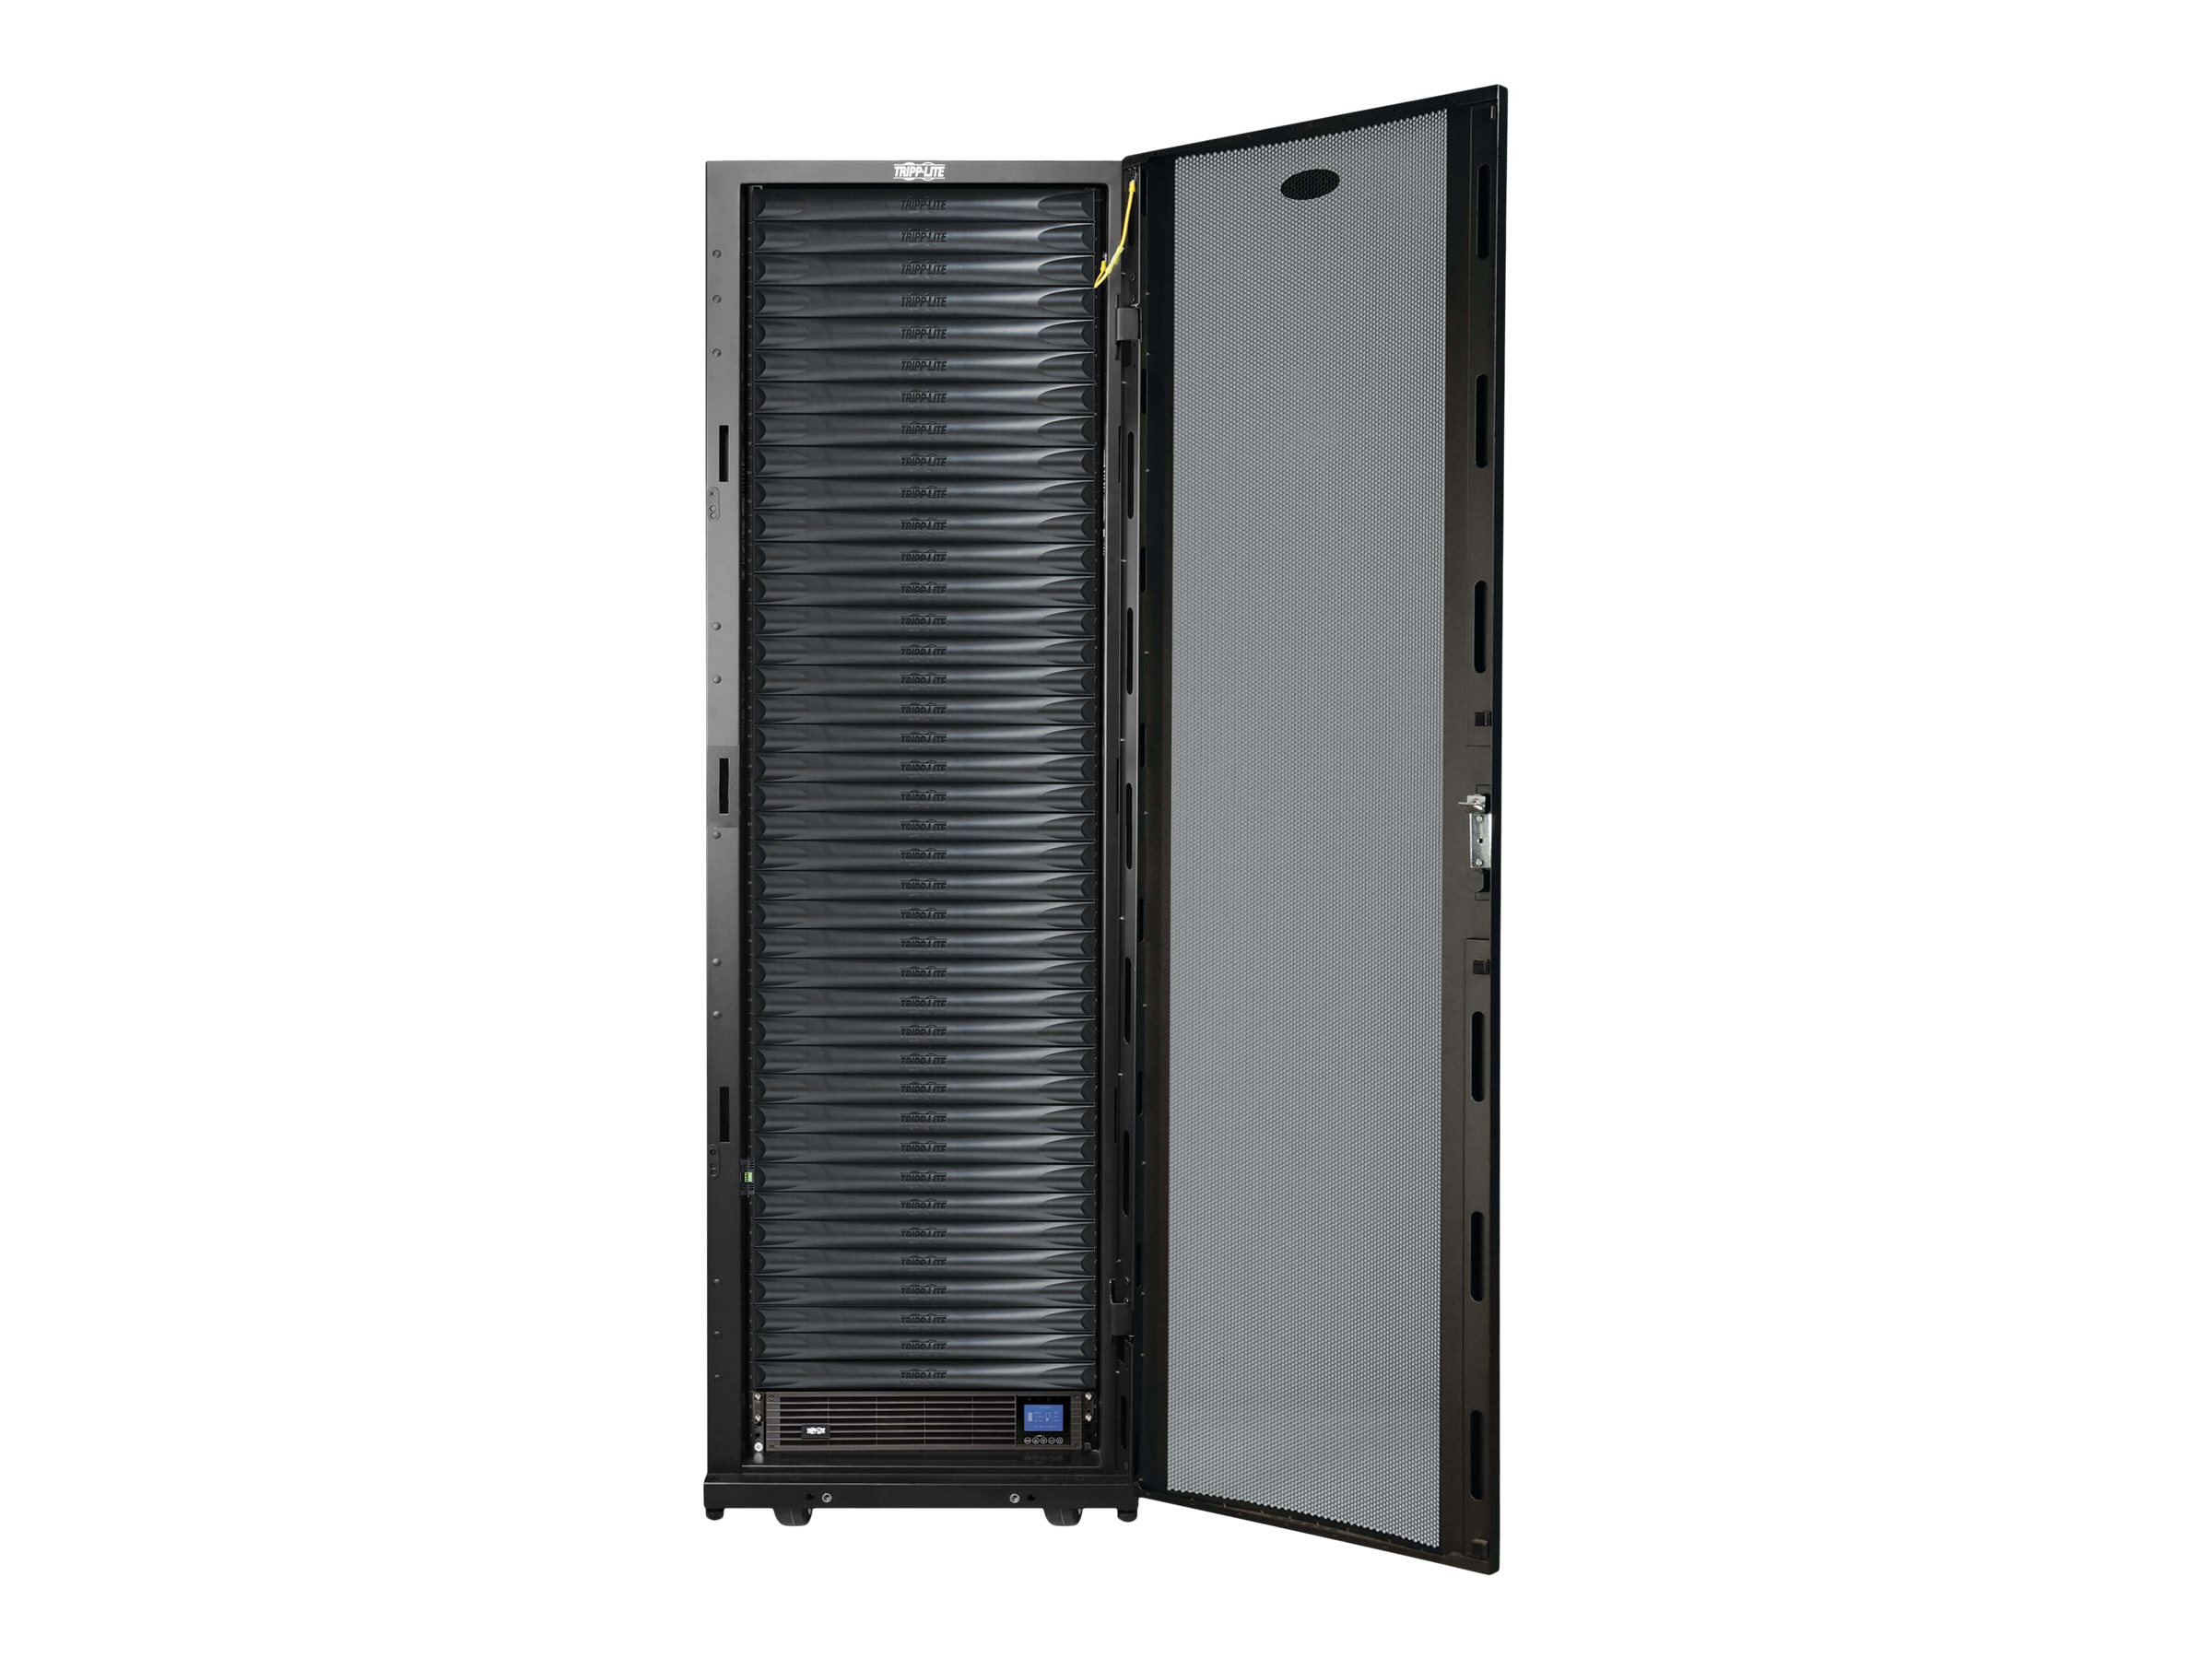 Tripp Lite EdgeReady Micro Data Center - 40U, 3 kVA UPS, Network Management and PDU, 230V Assembled/Tested Unit rack - …